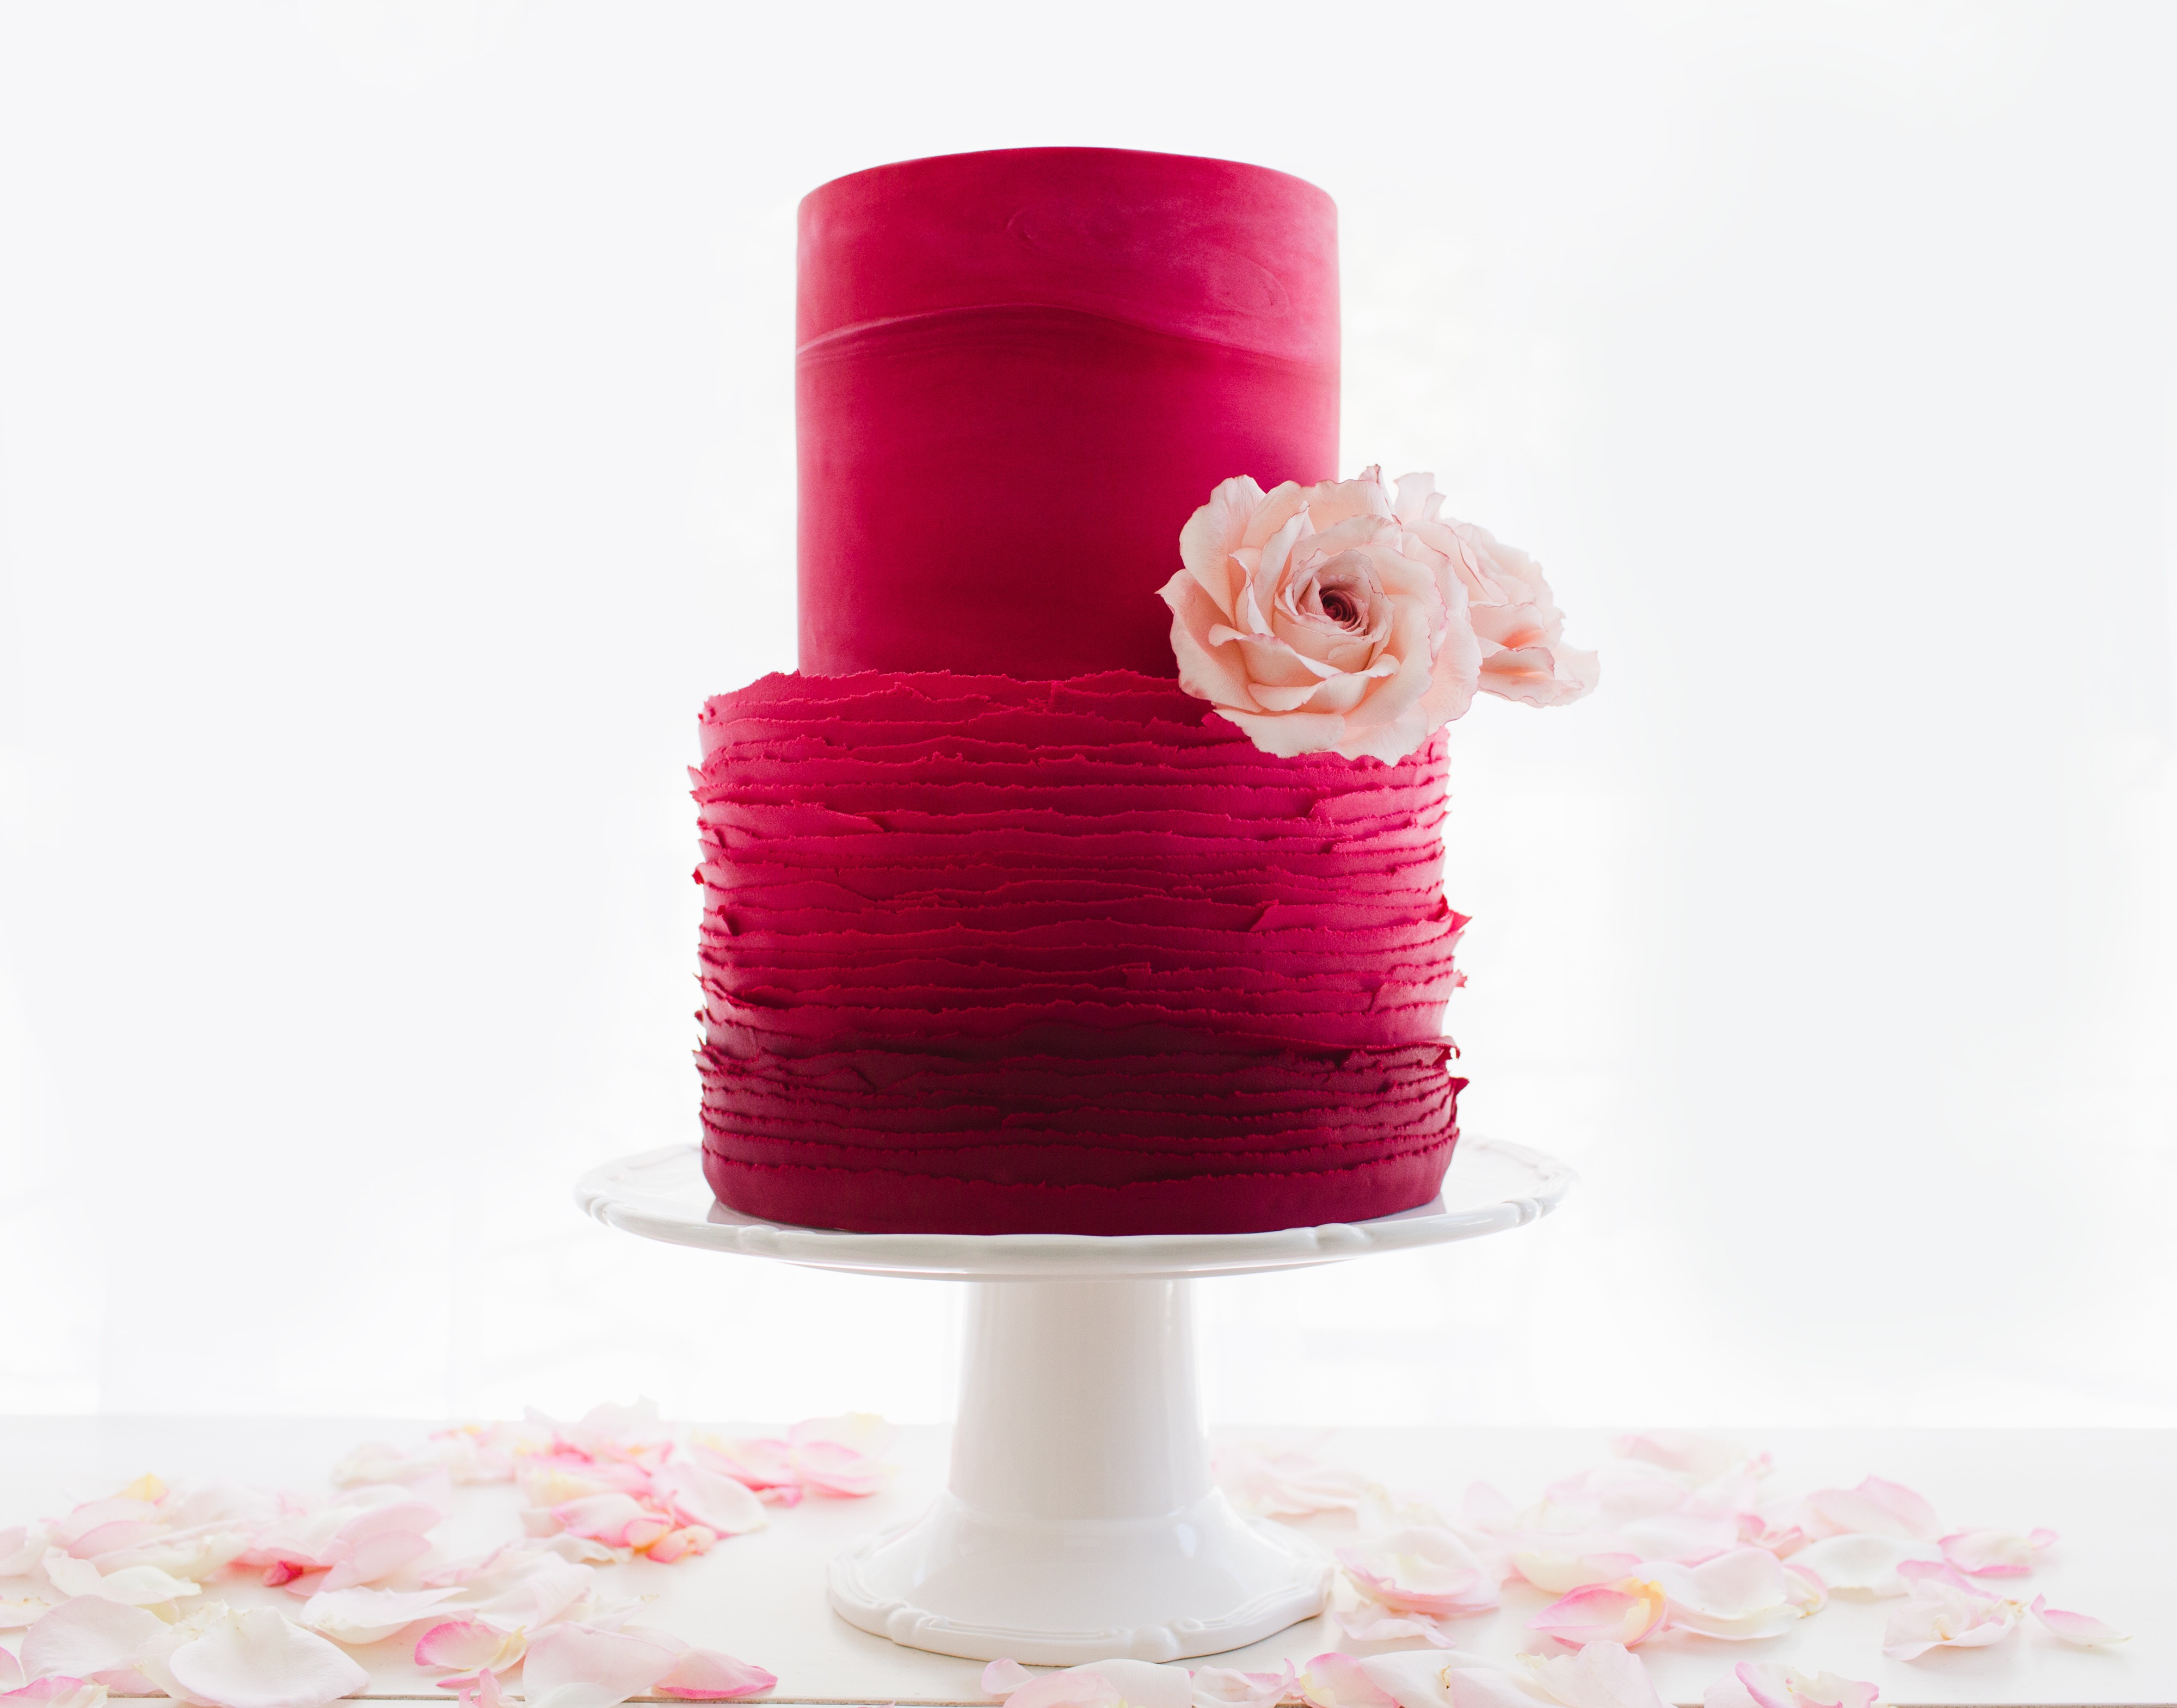 All red ruffle wedding cake